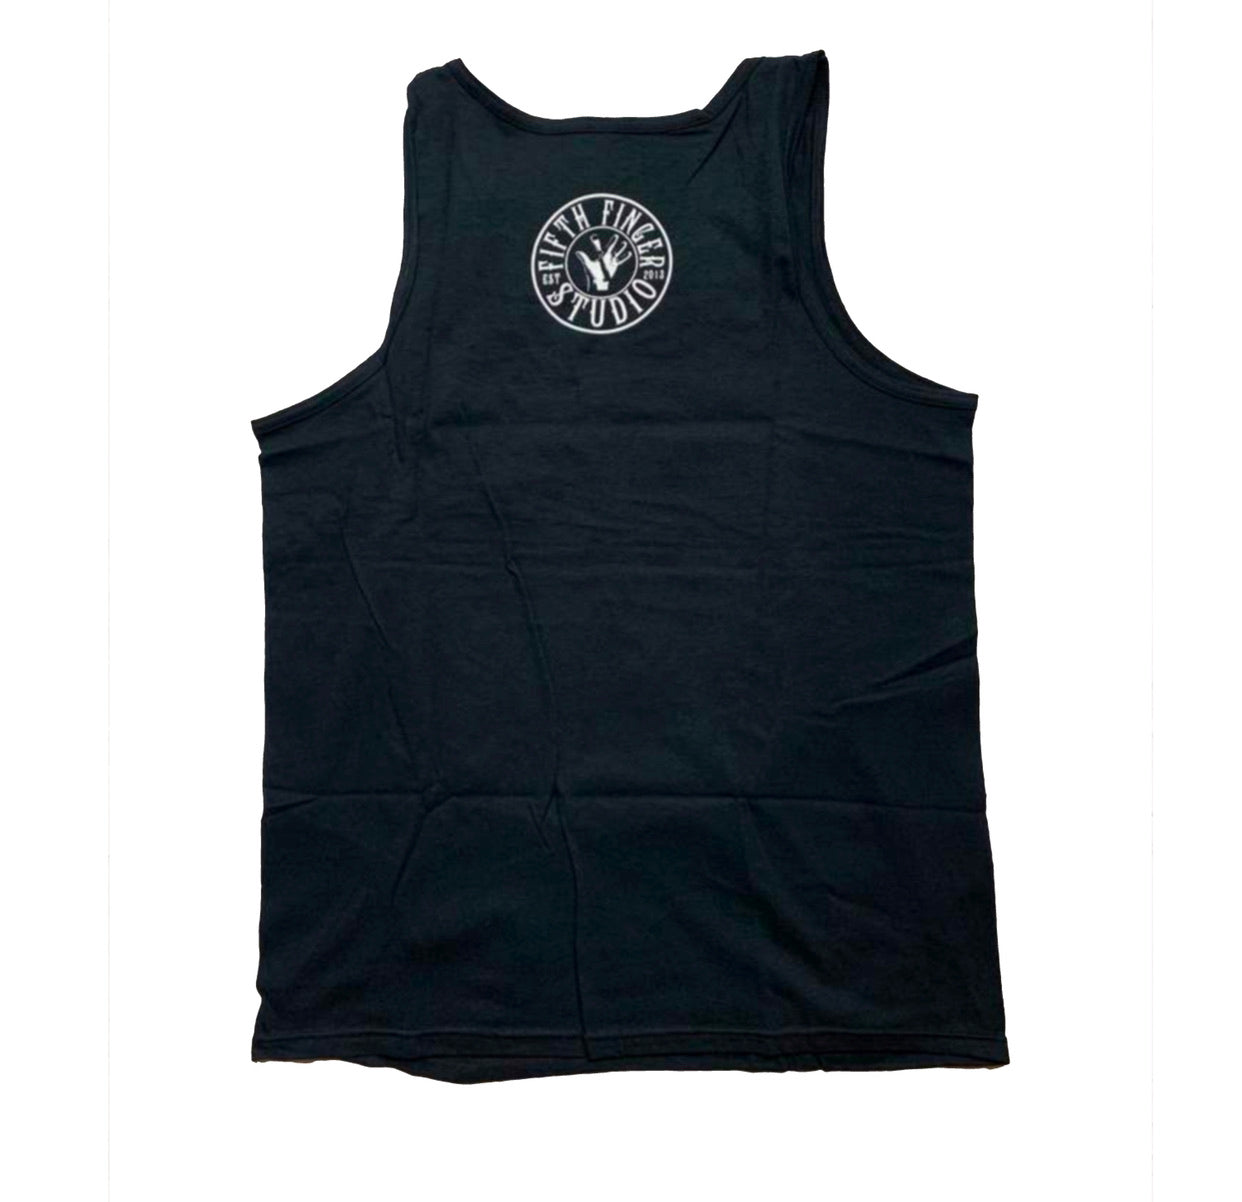 Praying Hands Tank top (Black)